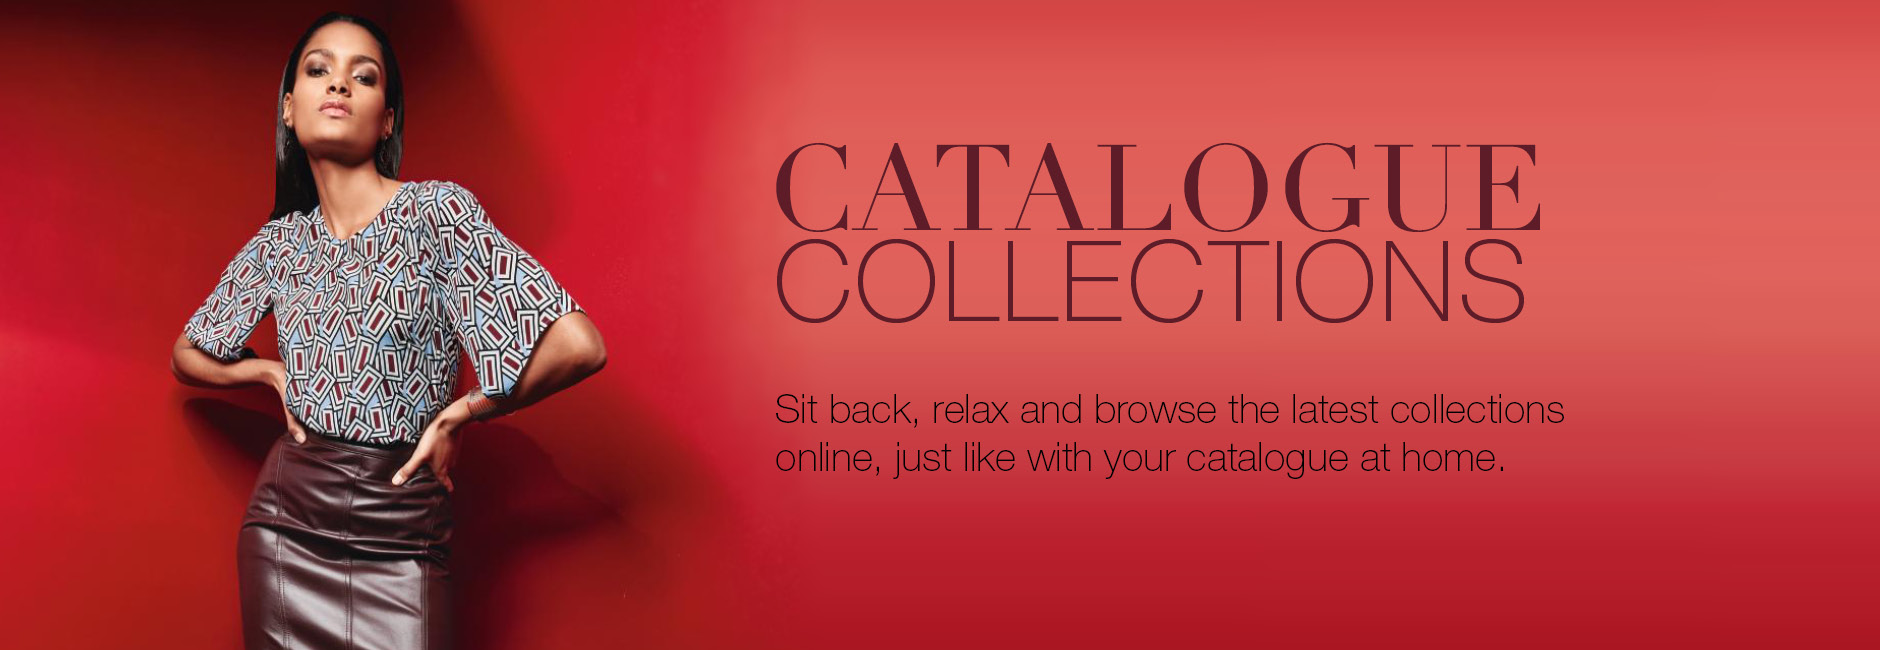 Catalogue collections